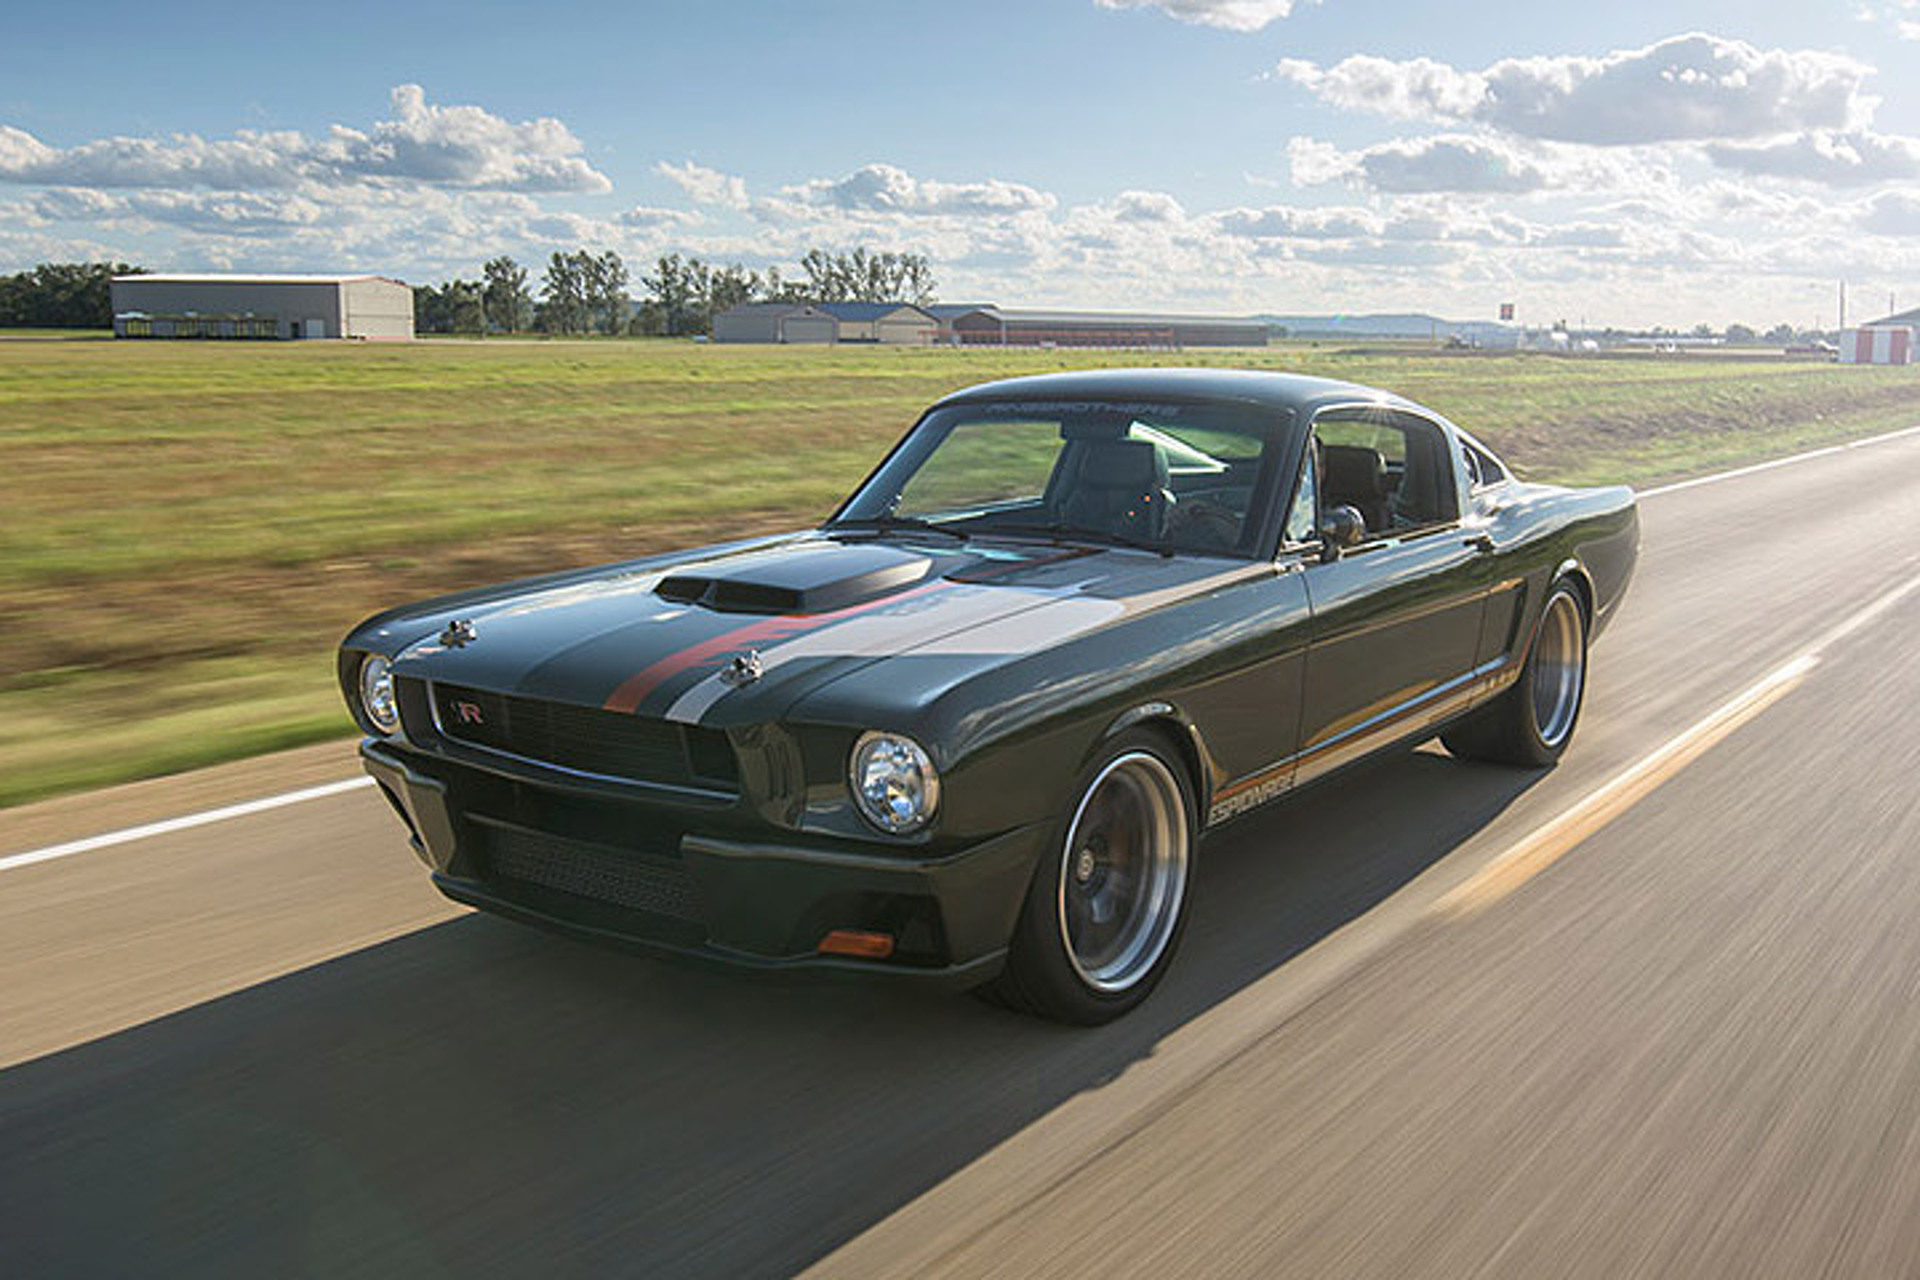 Luxury Ford Mustang Muscle Car Ornament - Classic Cars Ideas - boiq.info